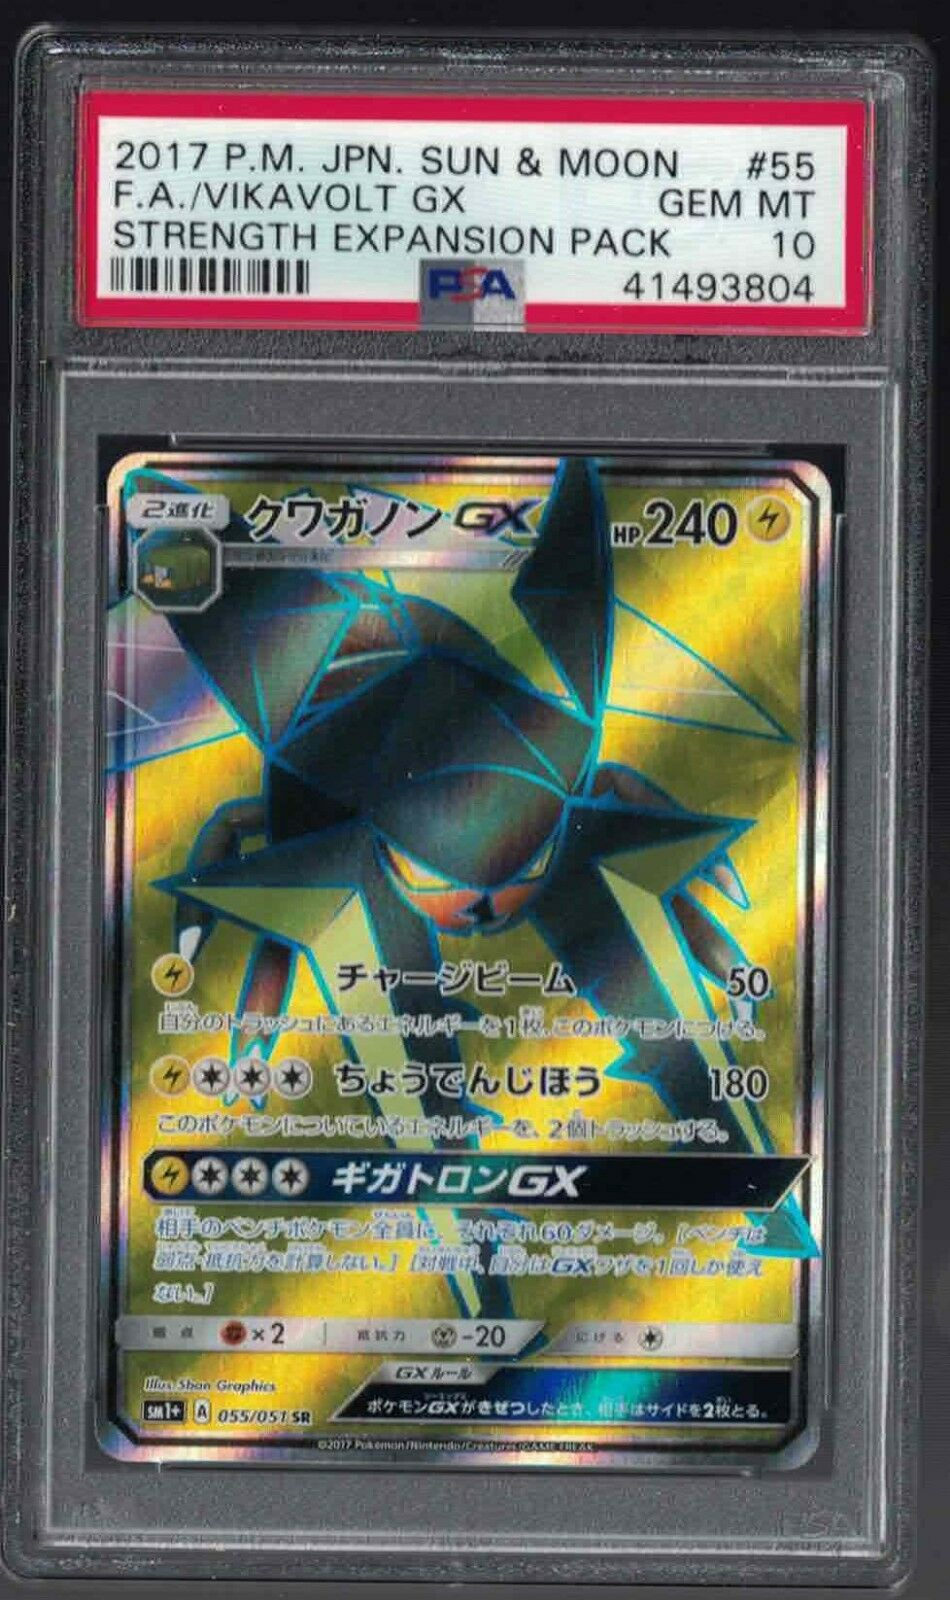 Pokemon GEM MINT PSA 10 Vikavolt GX 055 051 SR SM1+ Strength Sun Moon Full ART